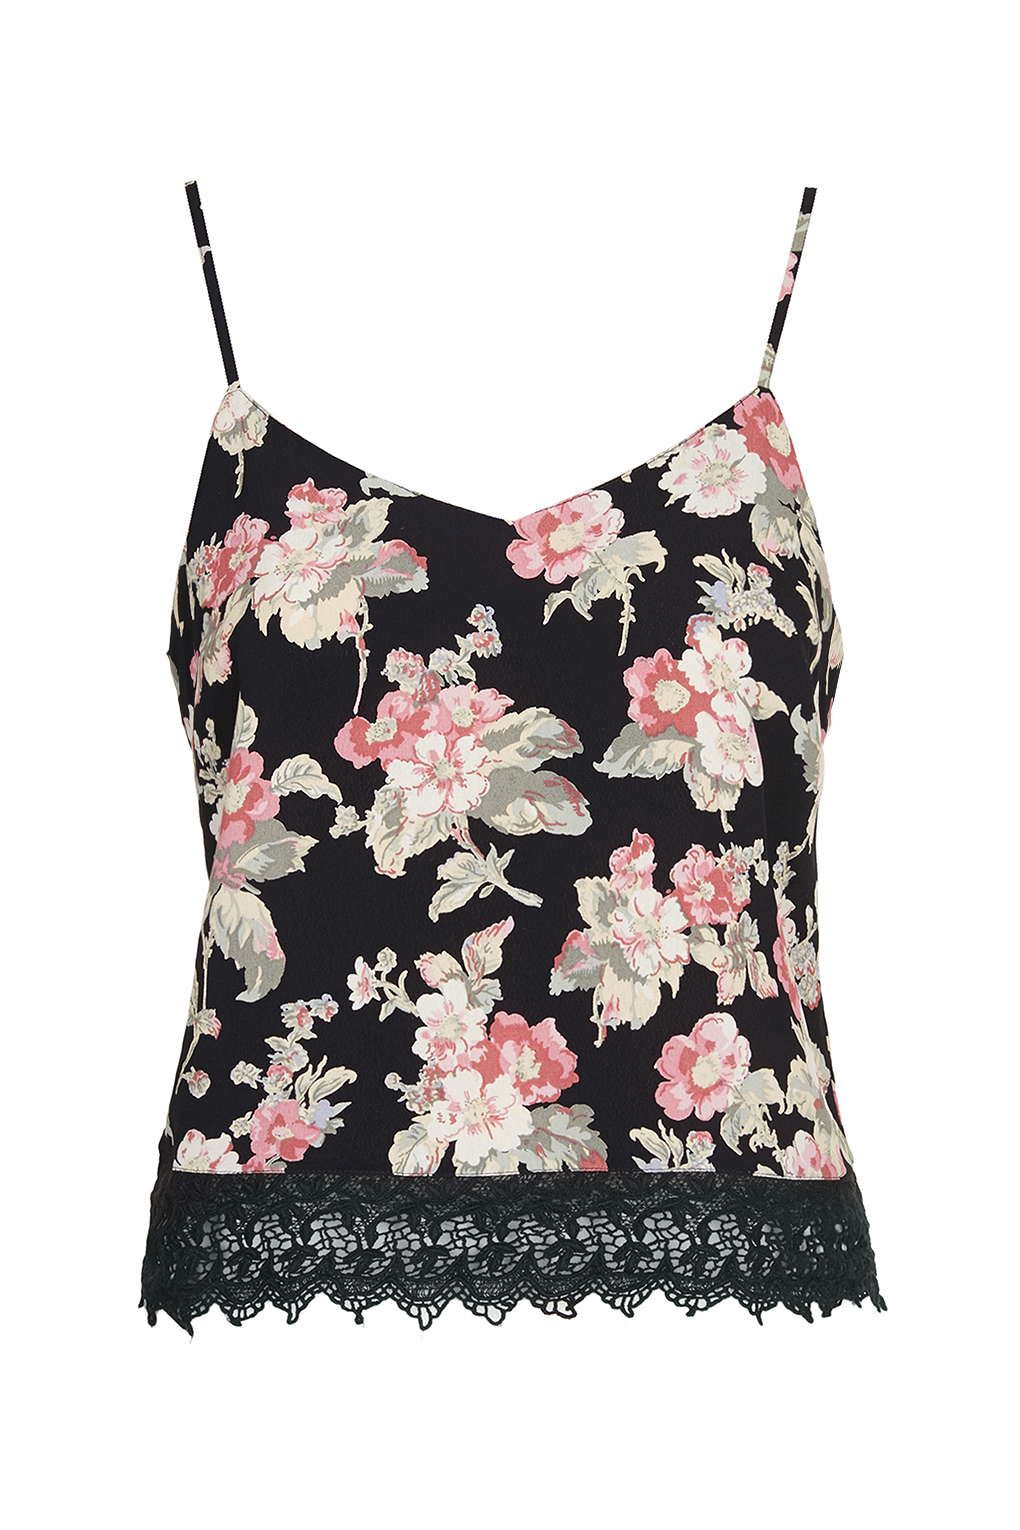 Petite Floral Print Cami Tops Clothing Cami Tops Clothing And